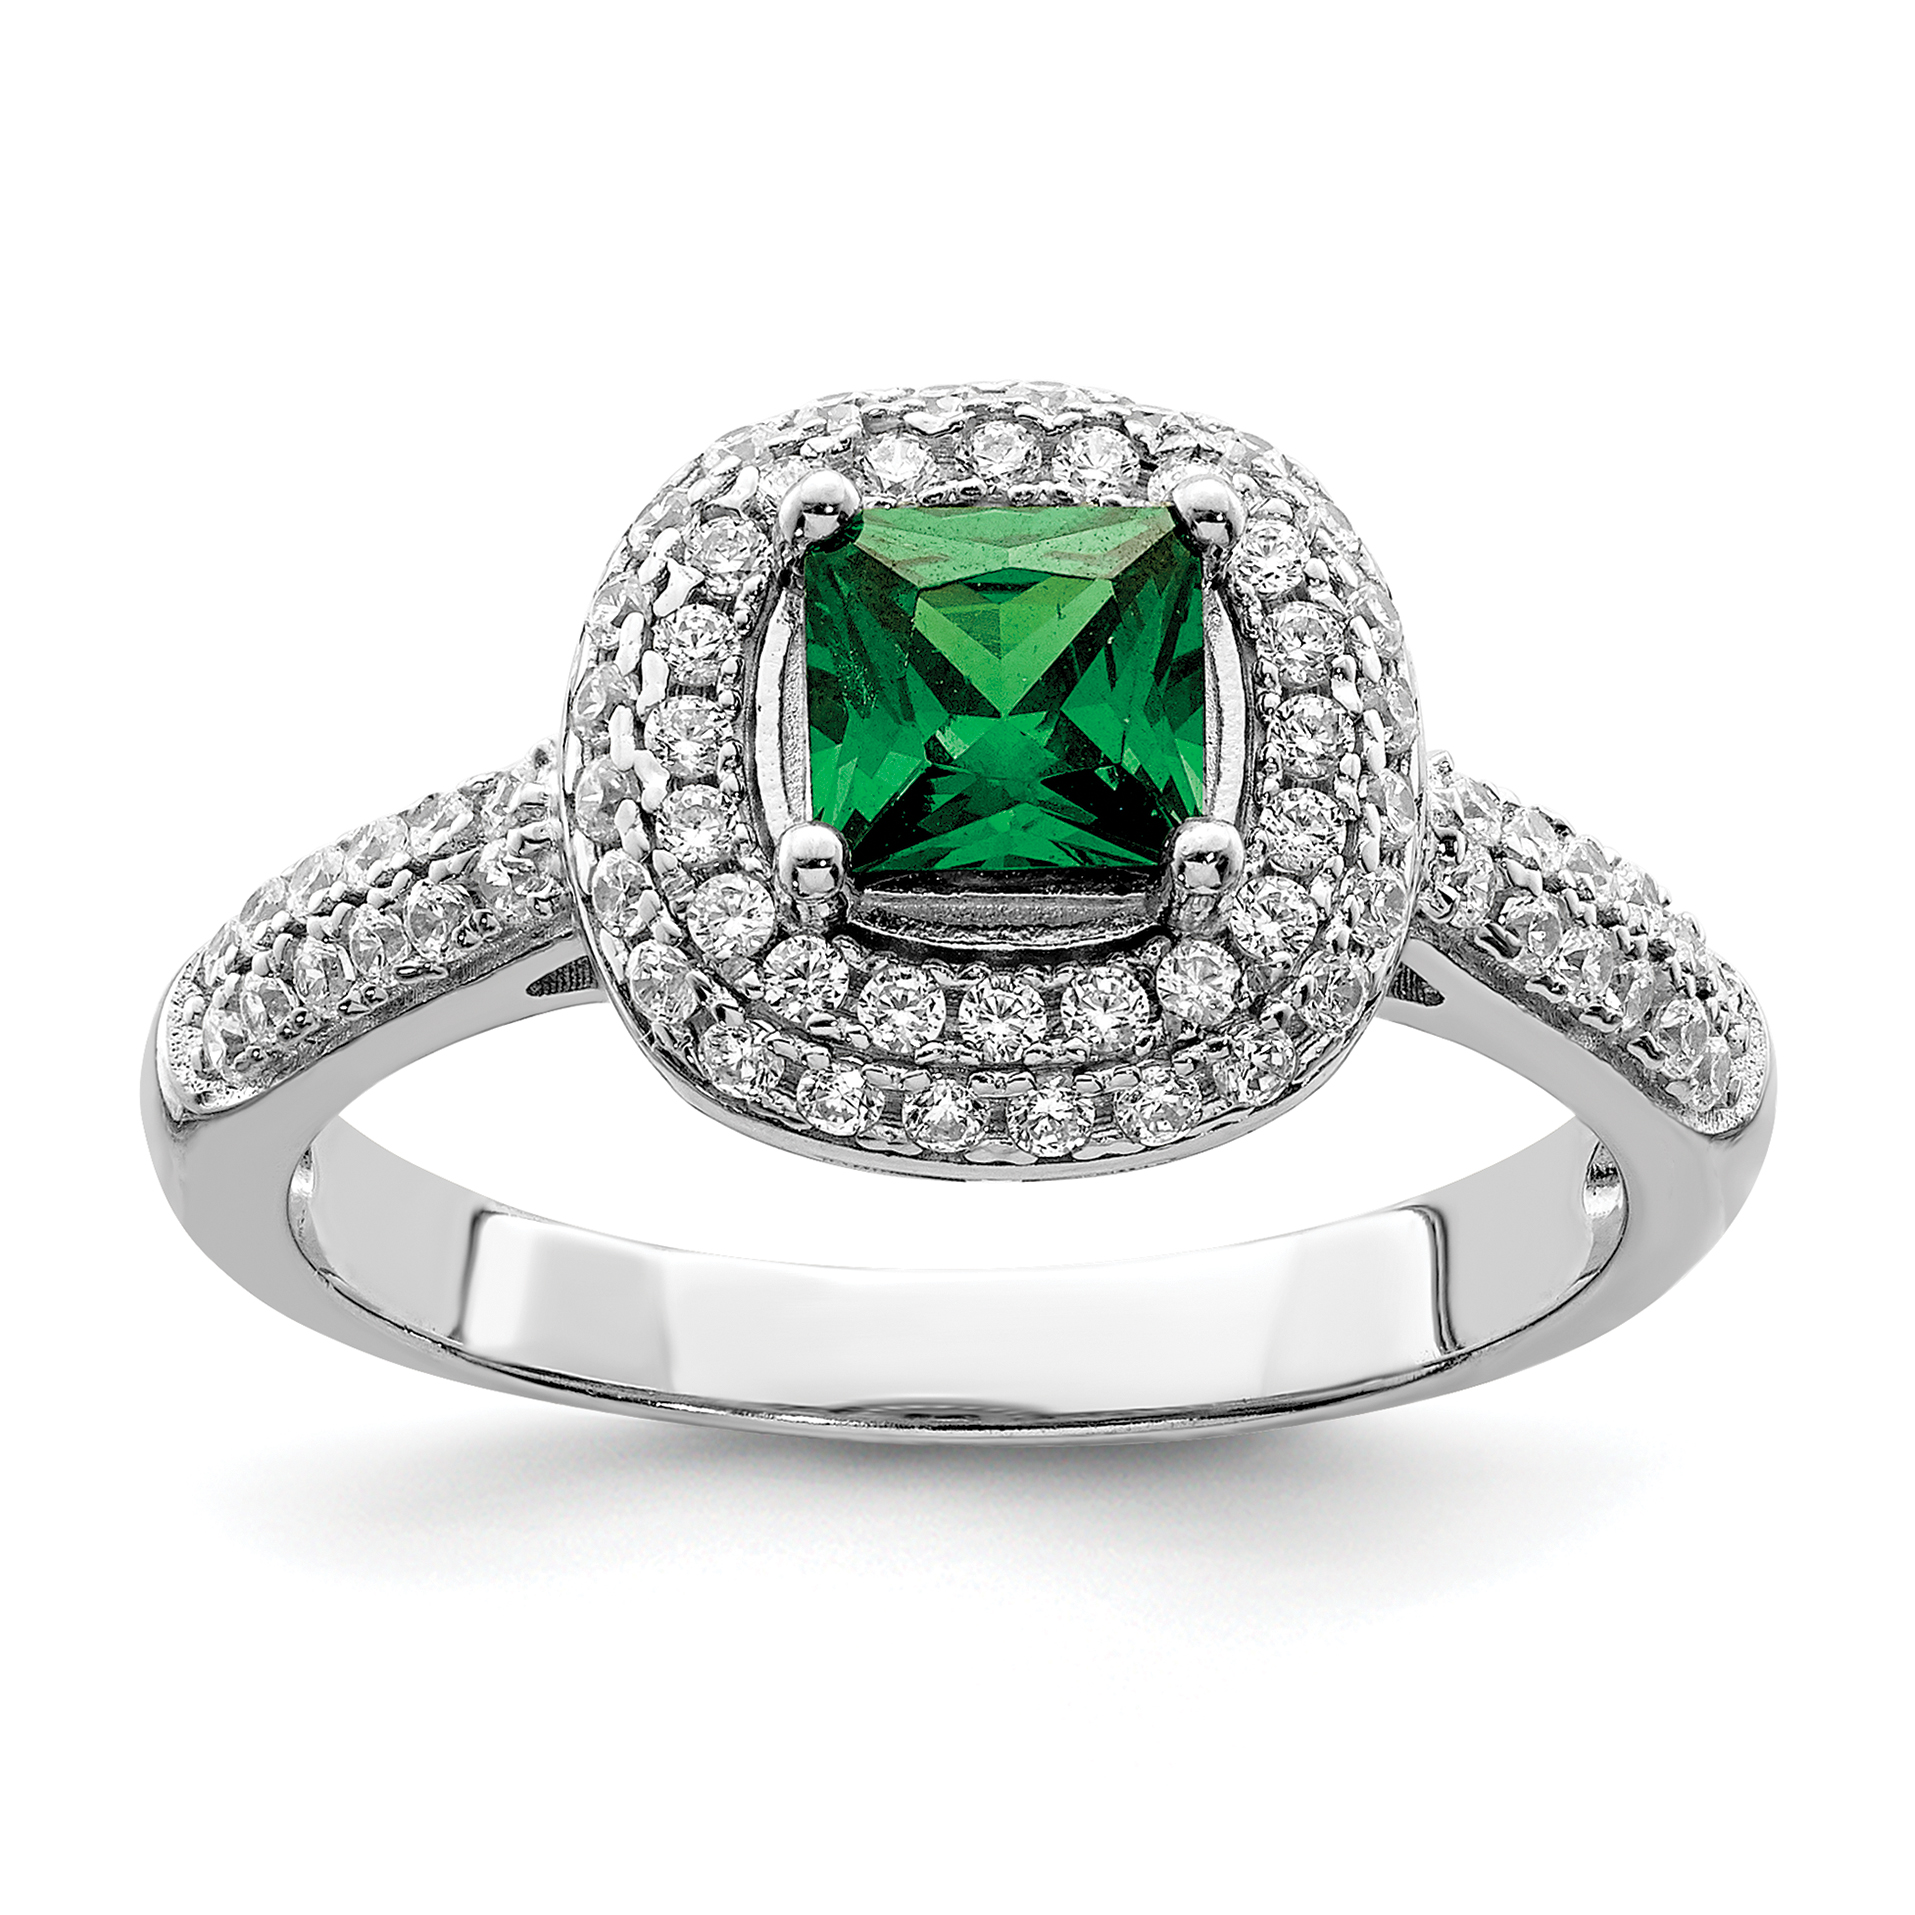 925 Sterling Silver White Green Cubic Zirconia Cz Band Ring Size 6.00 Fine Jewelry Gifts For Women For Her - image 3 of 3